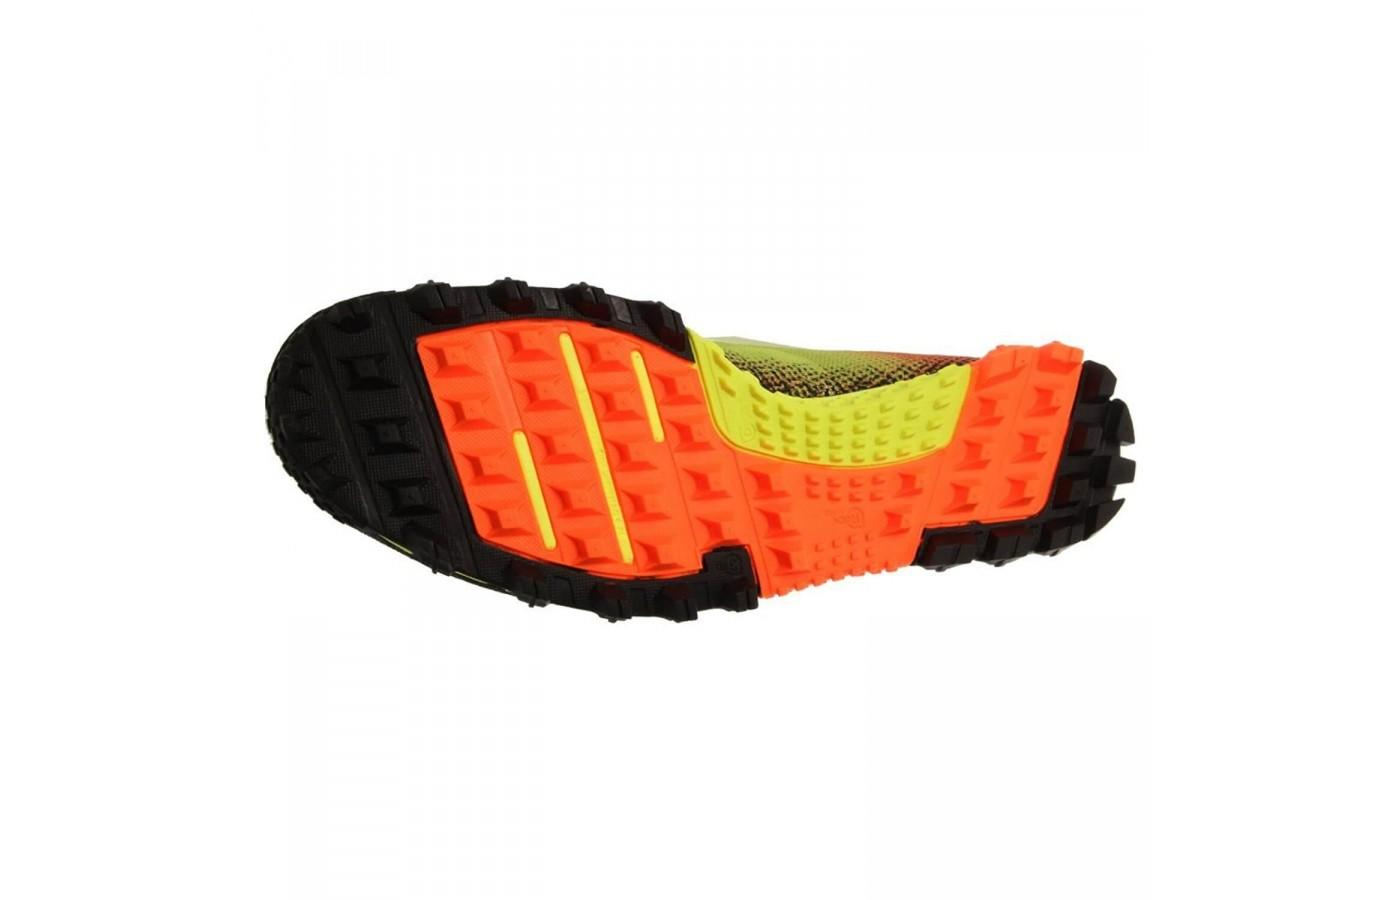 eb8d8b789ec The square lugs and midfoot rock guard are two key features of the Reebok  All Terrain